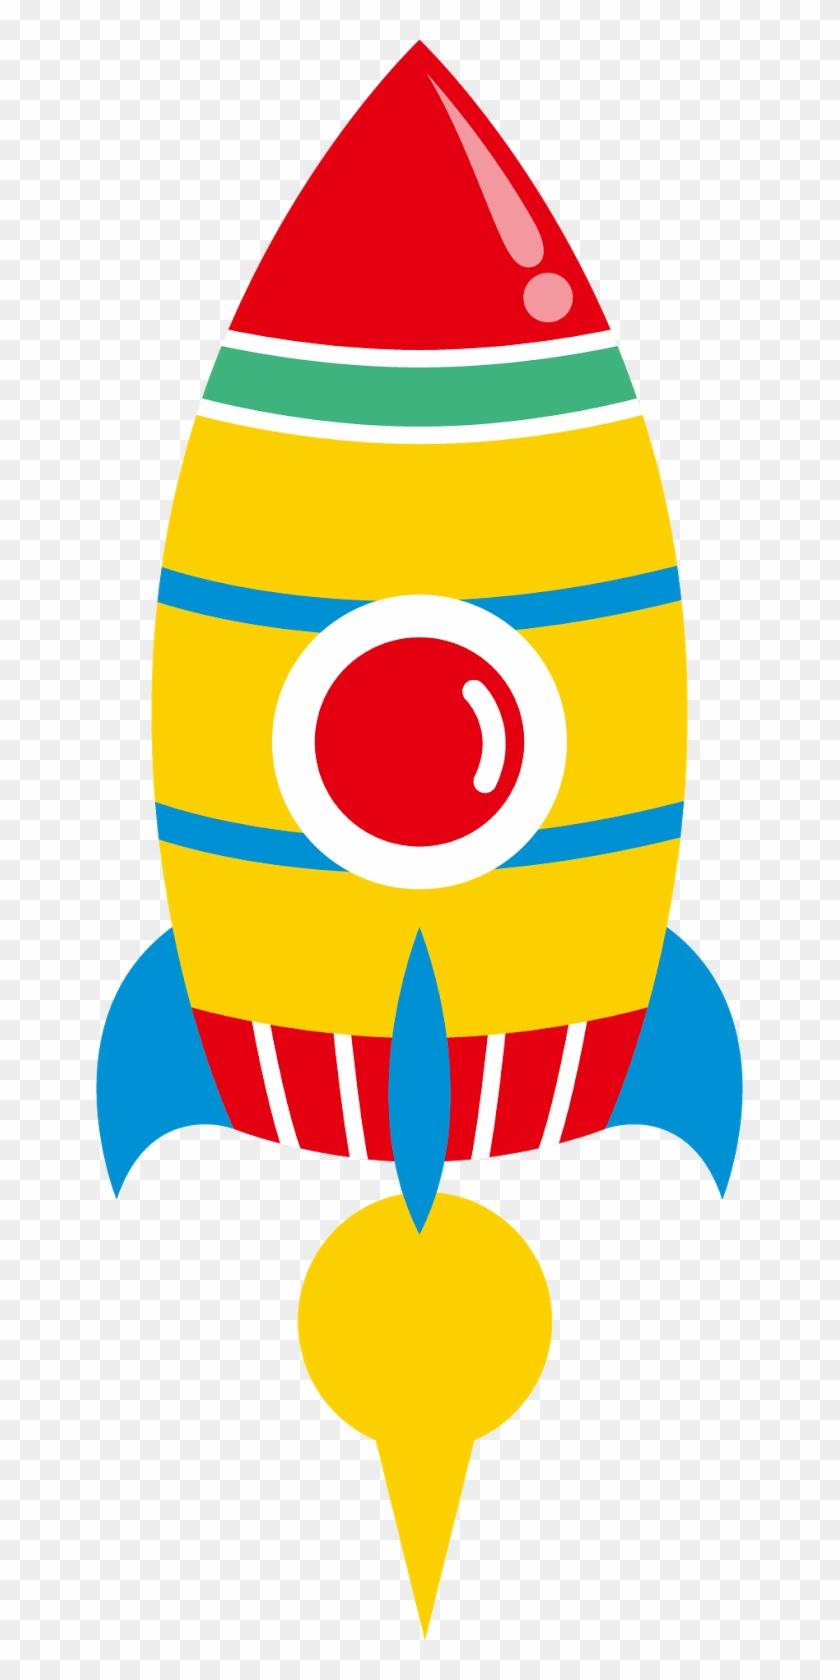 Giggle And Print - Free Clip Art Space Ship #171679